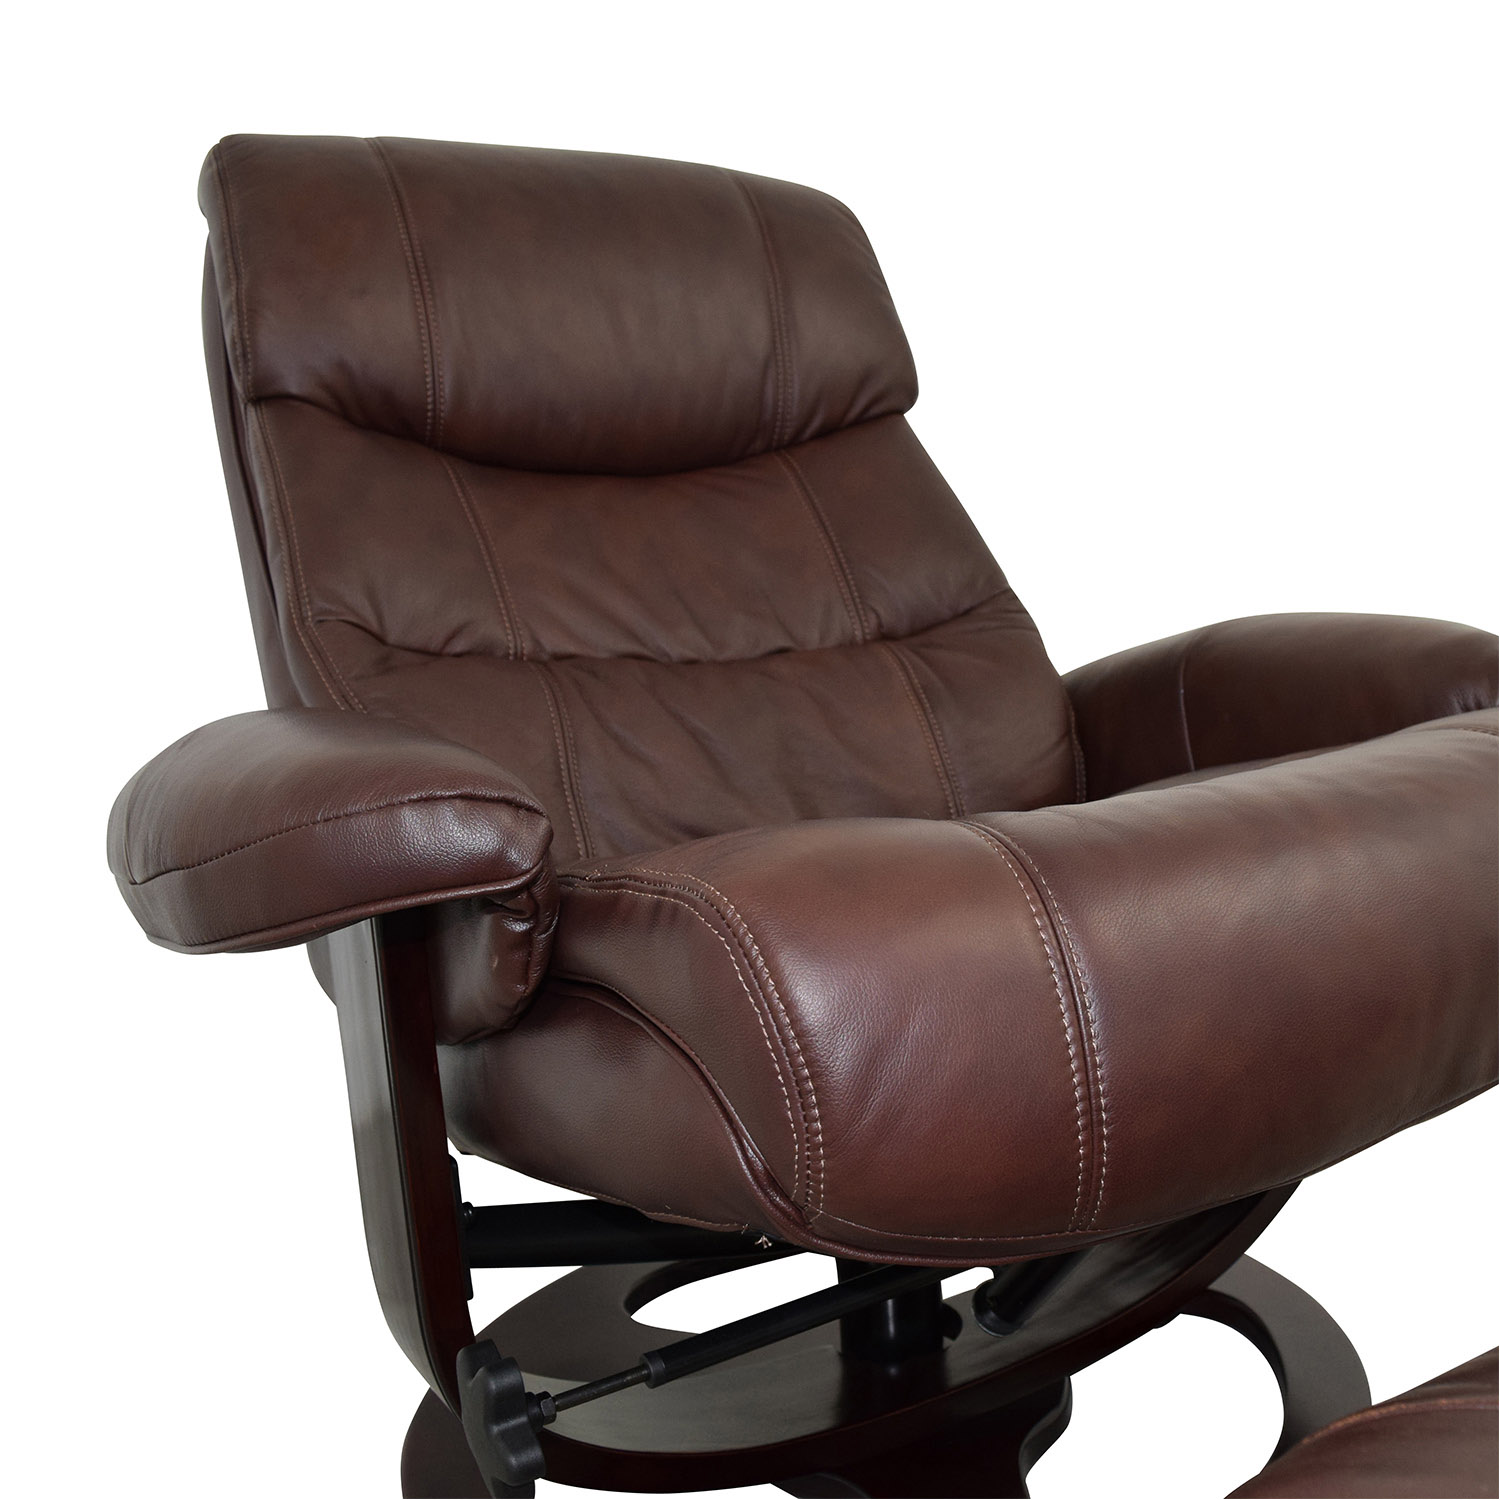 59 OFF  Macys Macys Aby Brown Leather Recliner Chair  Ottoman  Chairs